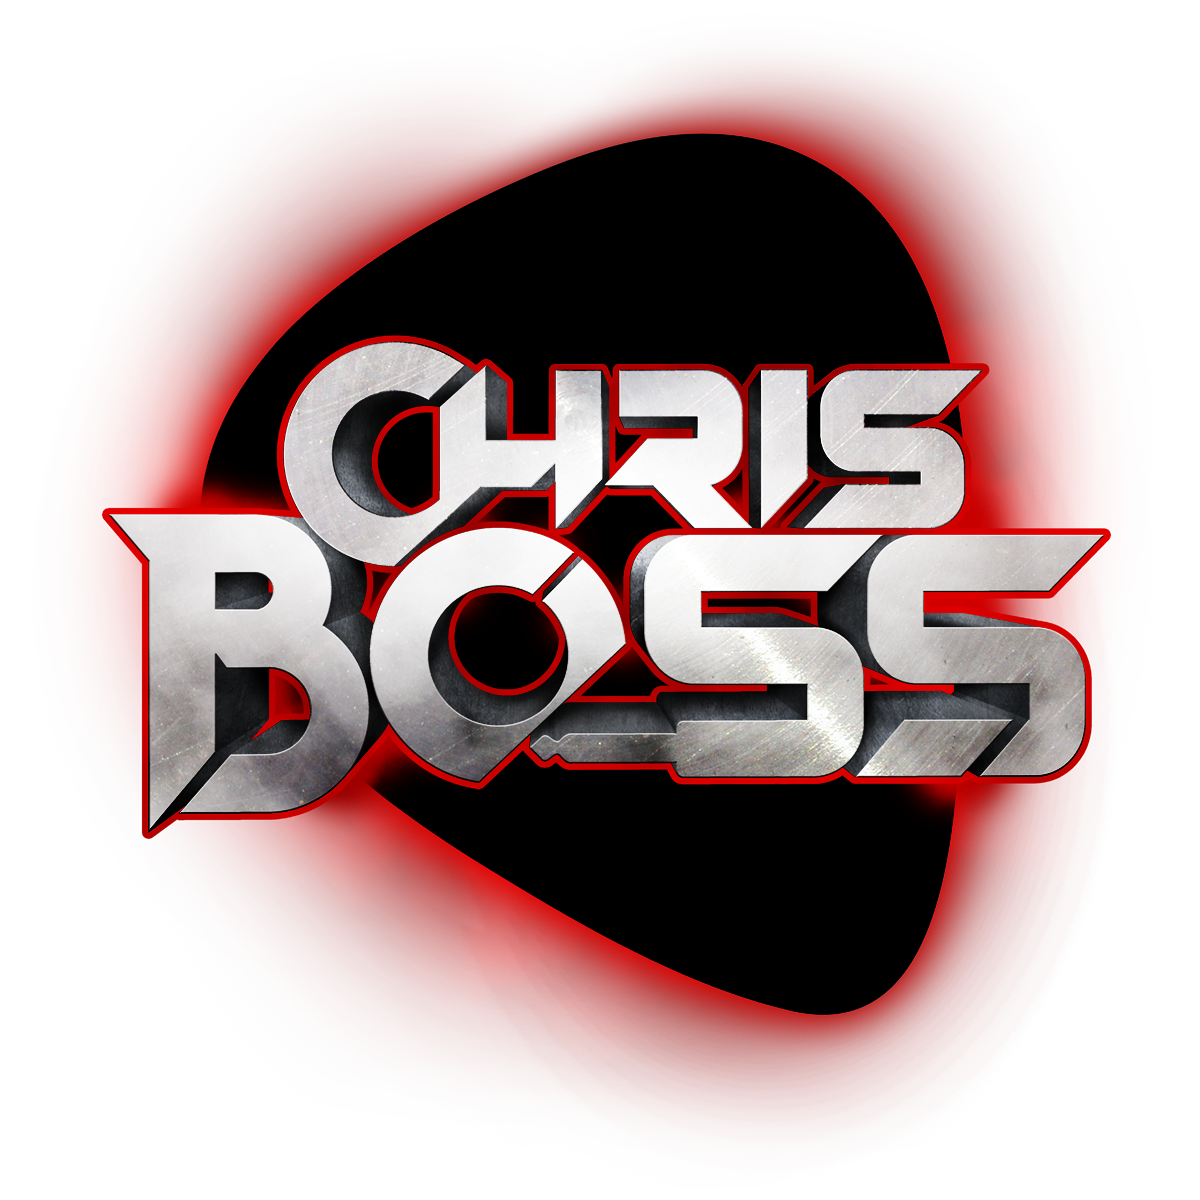 Chris Boss